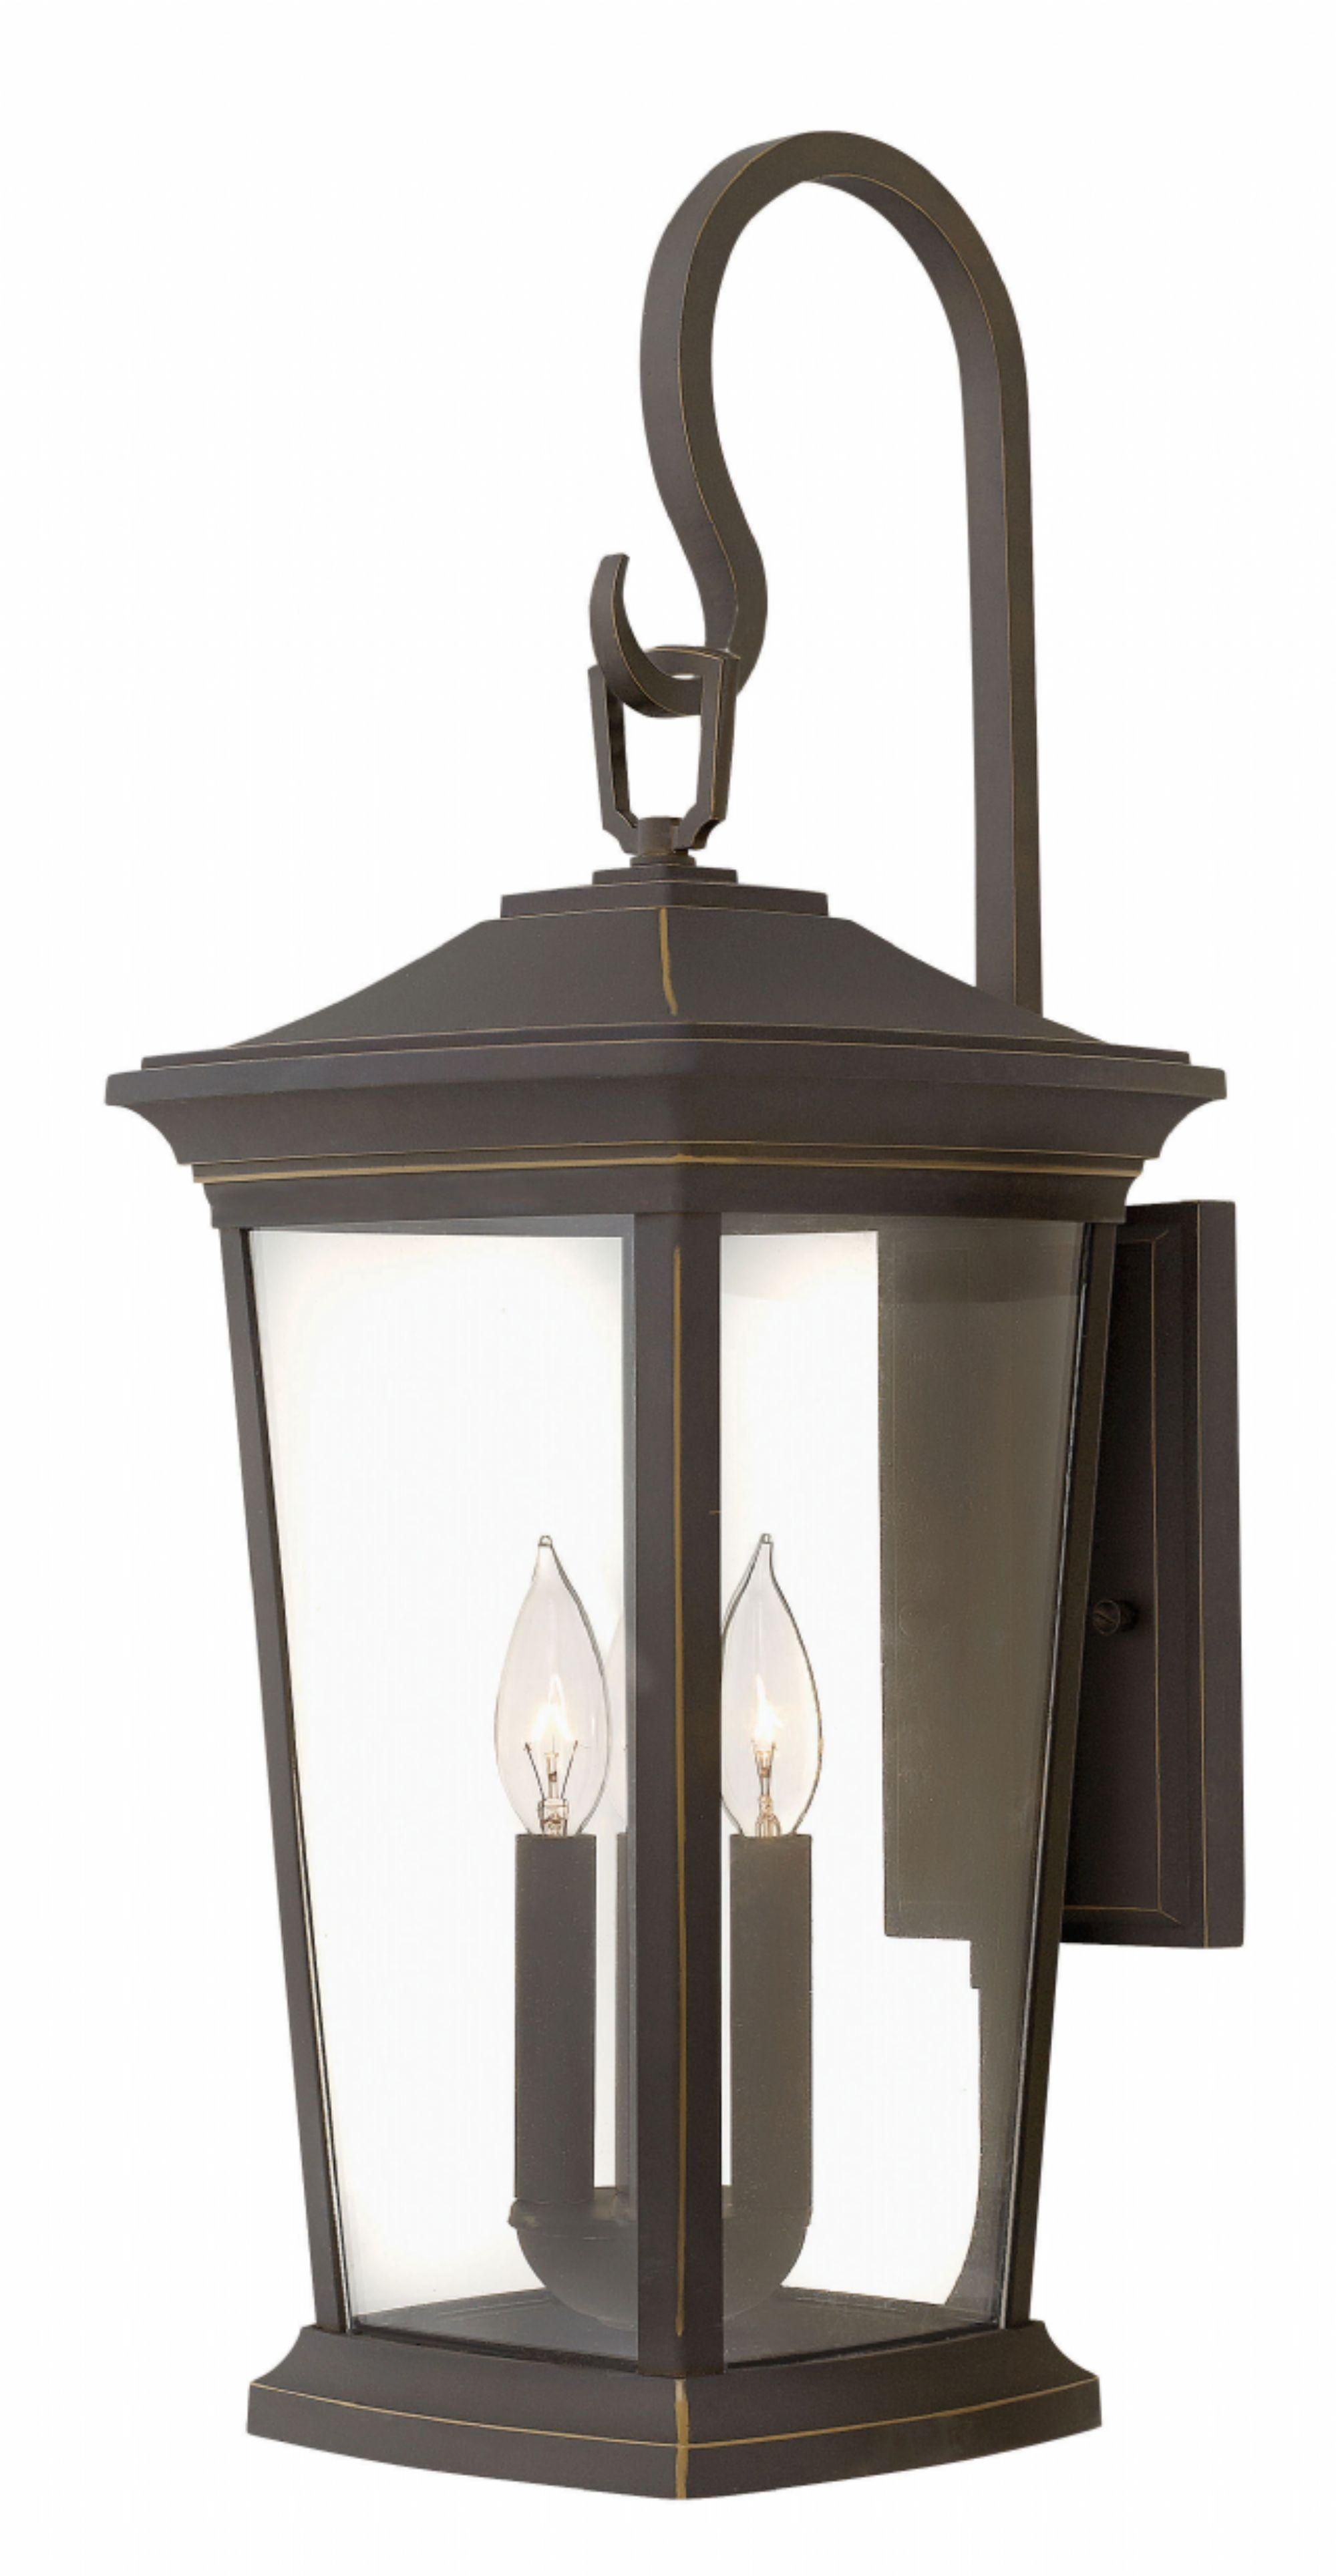 Hinkley Lighting – Bromley 2366Oz | H Lighting | Pinterest | Bromley With Extra Large Wall Mount Porch Hinkley Lighting (#11 of 15)